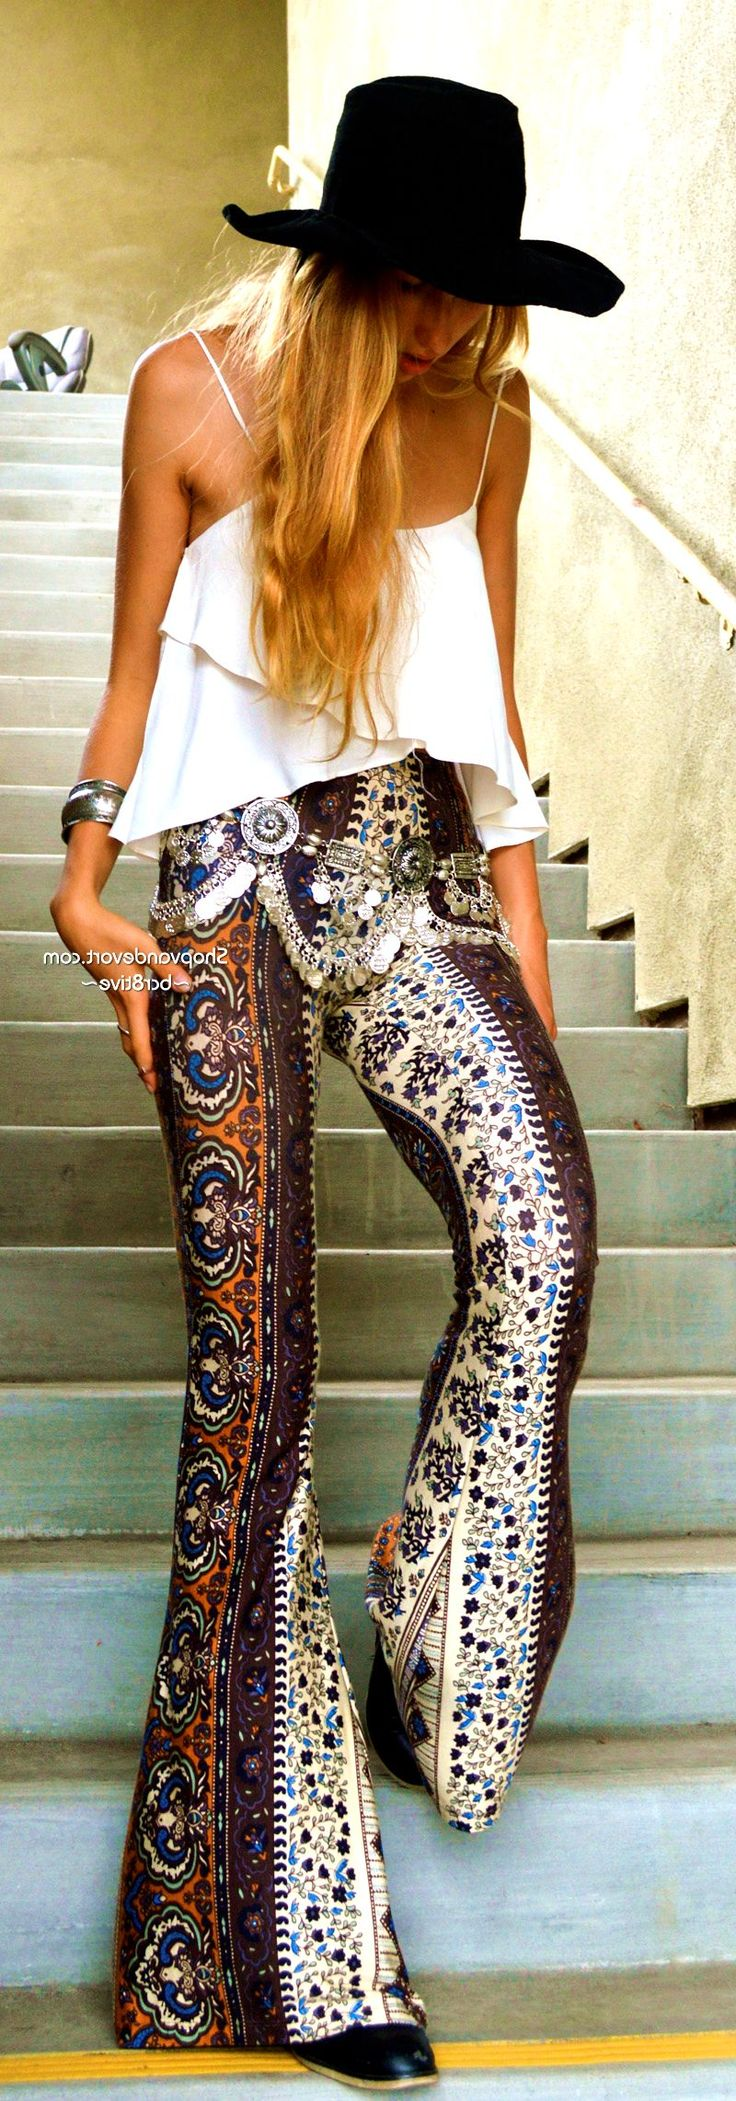 35 Boho Pants Outfit Ideas For That Hippie Chic Boheme Vibe #boho  #pants #style #outfit #summer #harem